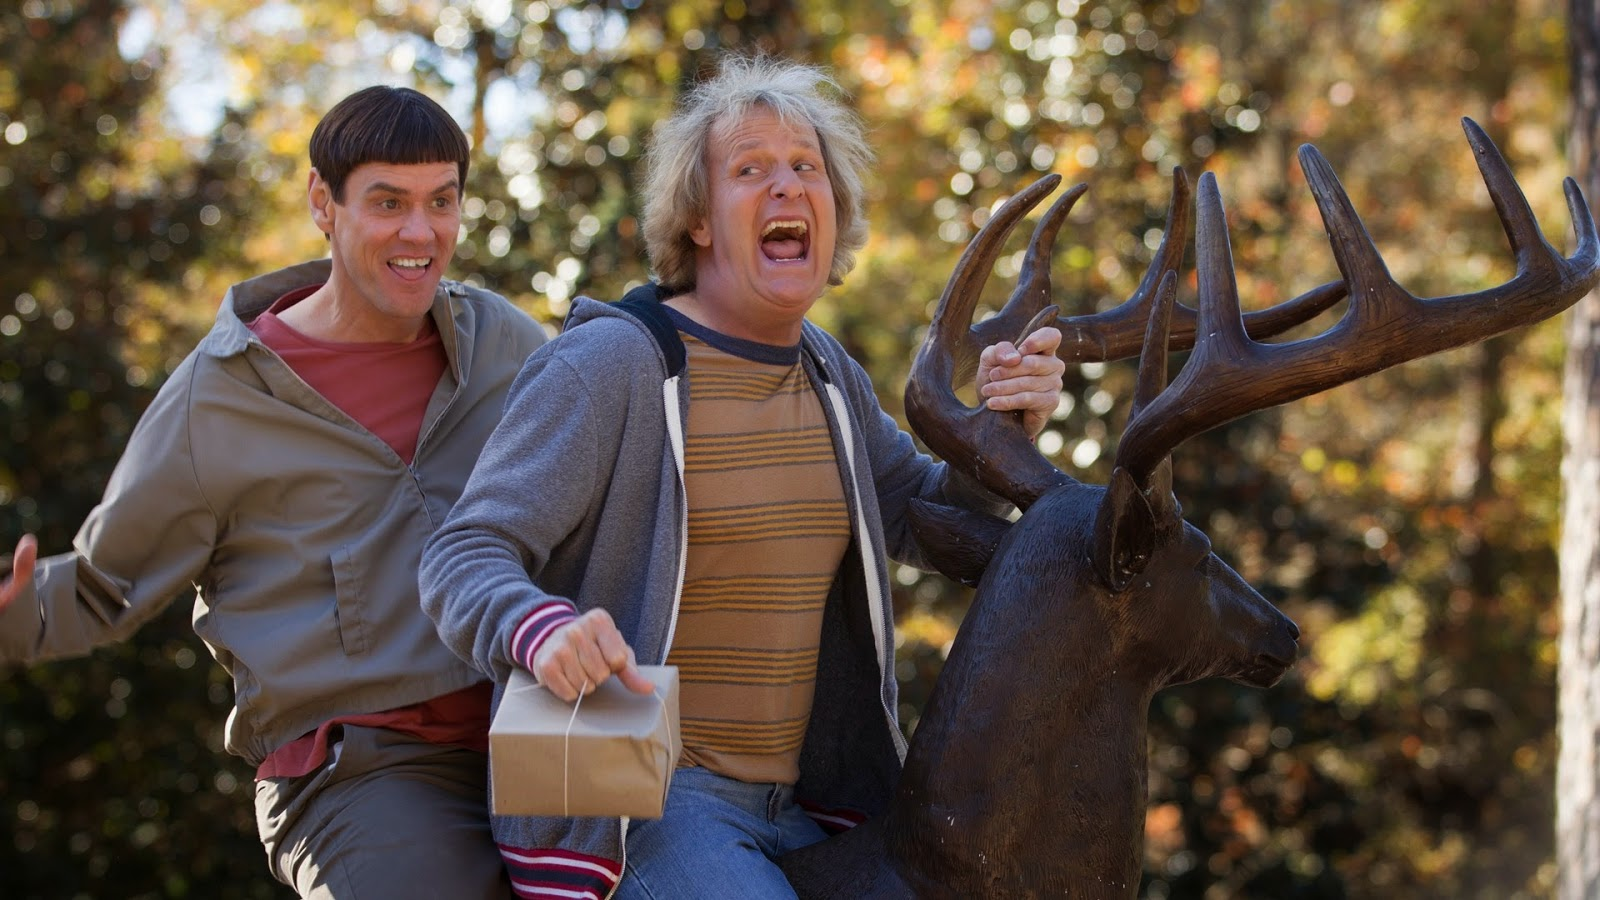 Harry and Lloyd riding a deer sculpture in the movie Dumb and Dumber To